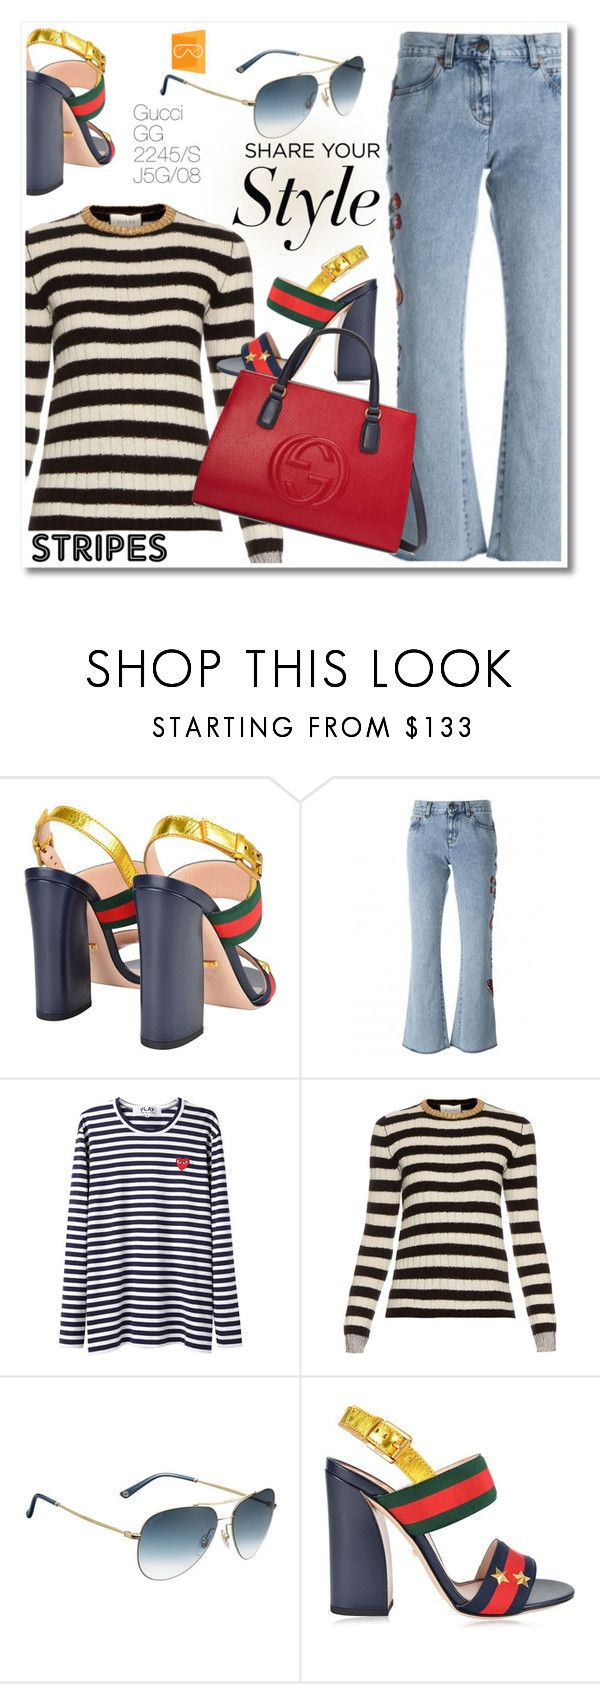 """""""Share your style"""" by smartbuyglasses-uk ❤ liked on Polyvore featuring Gucci, Play Comme des Garçons, stripes, gucci and aviator"""